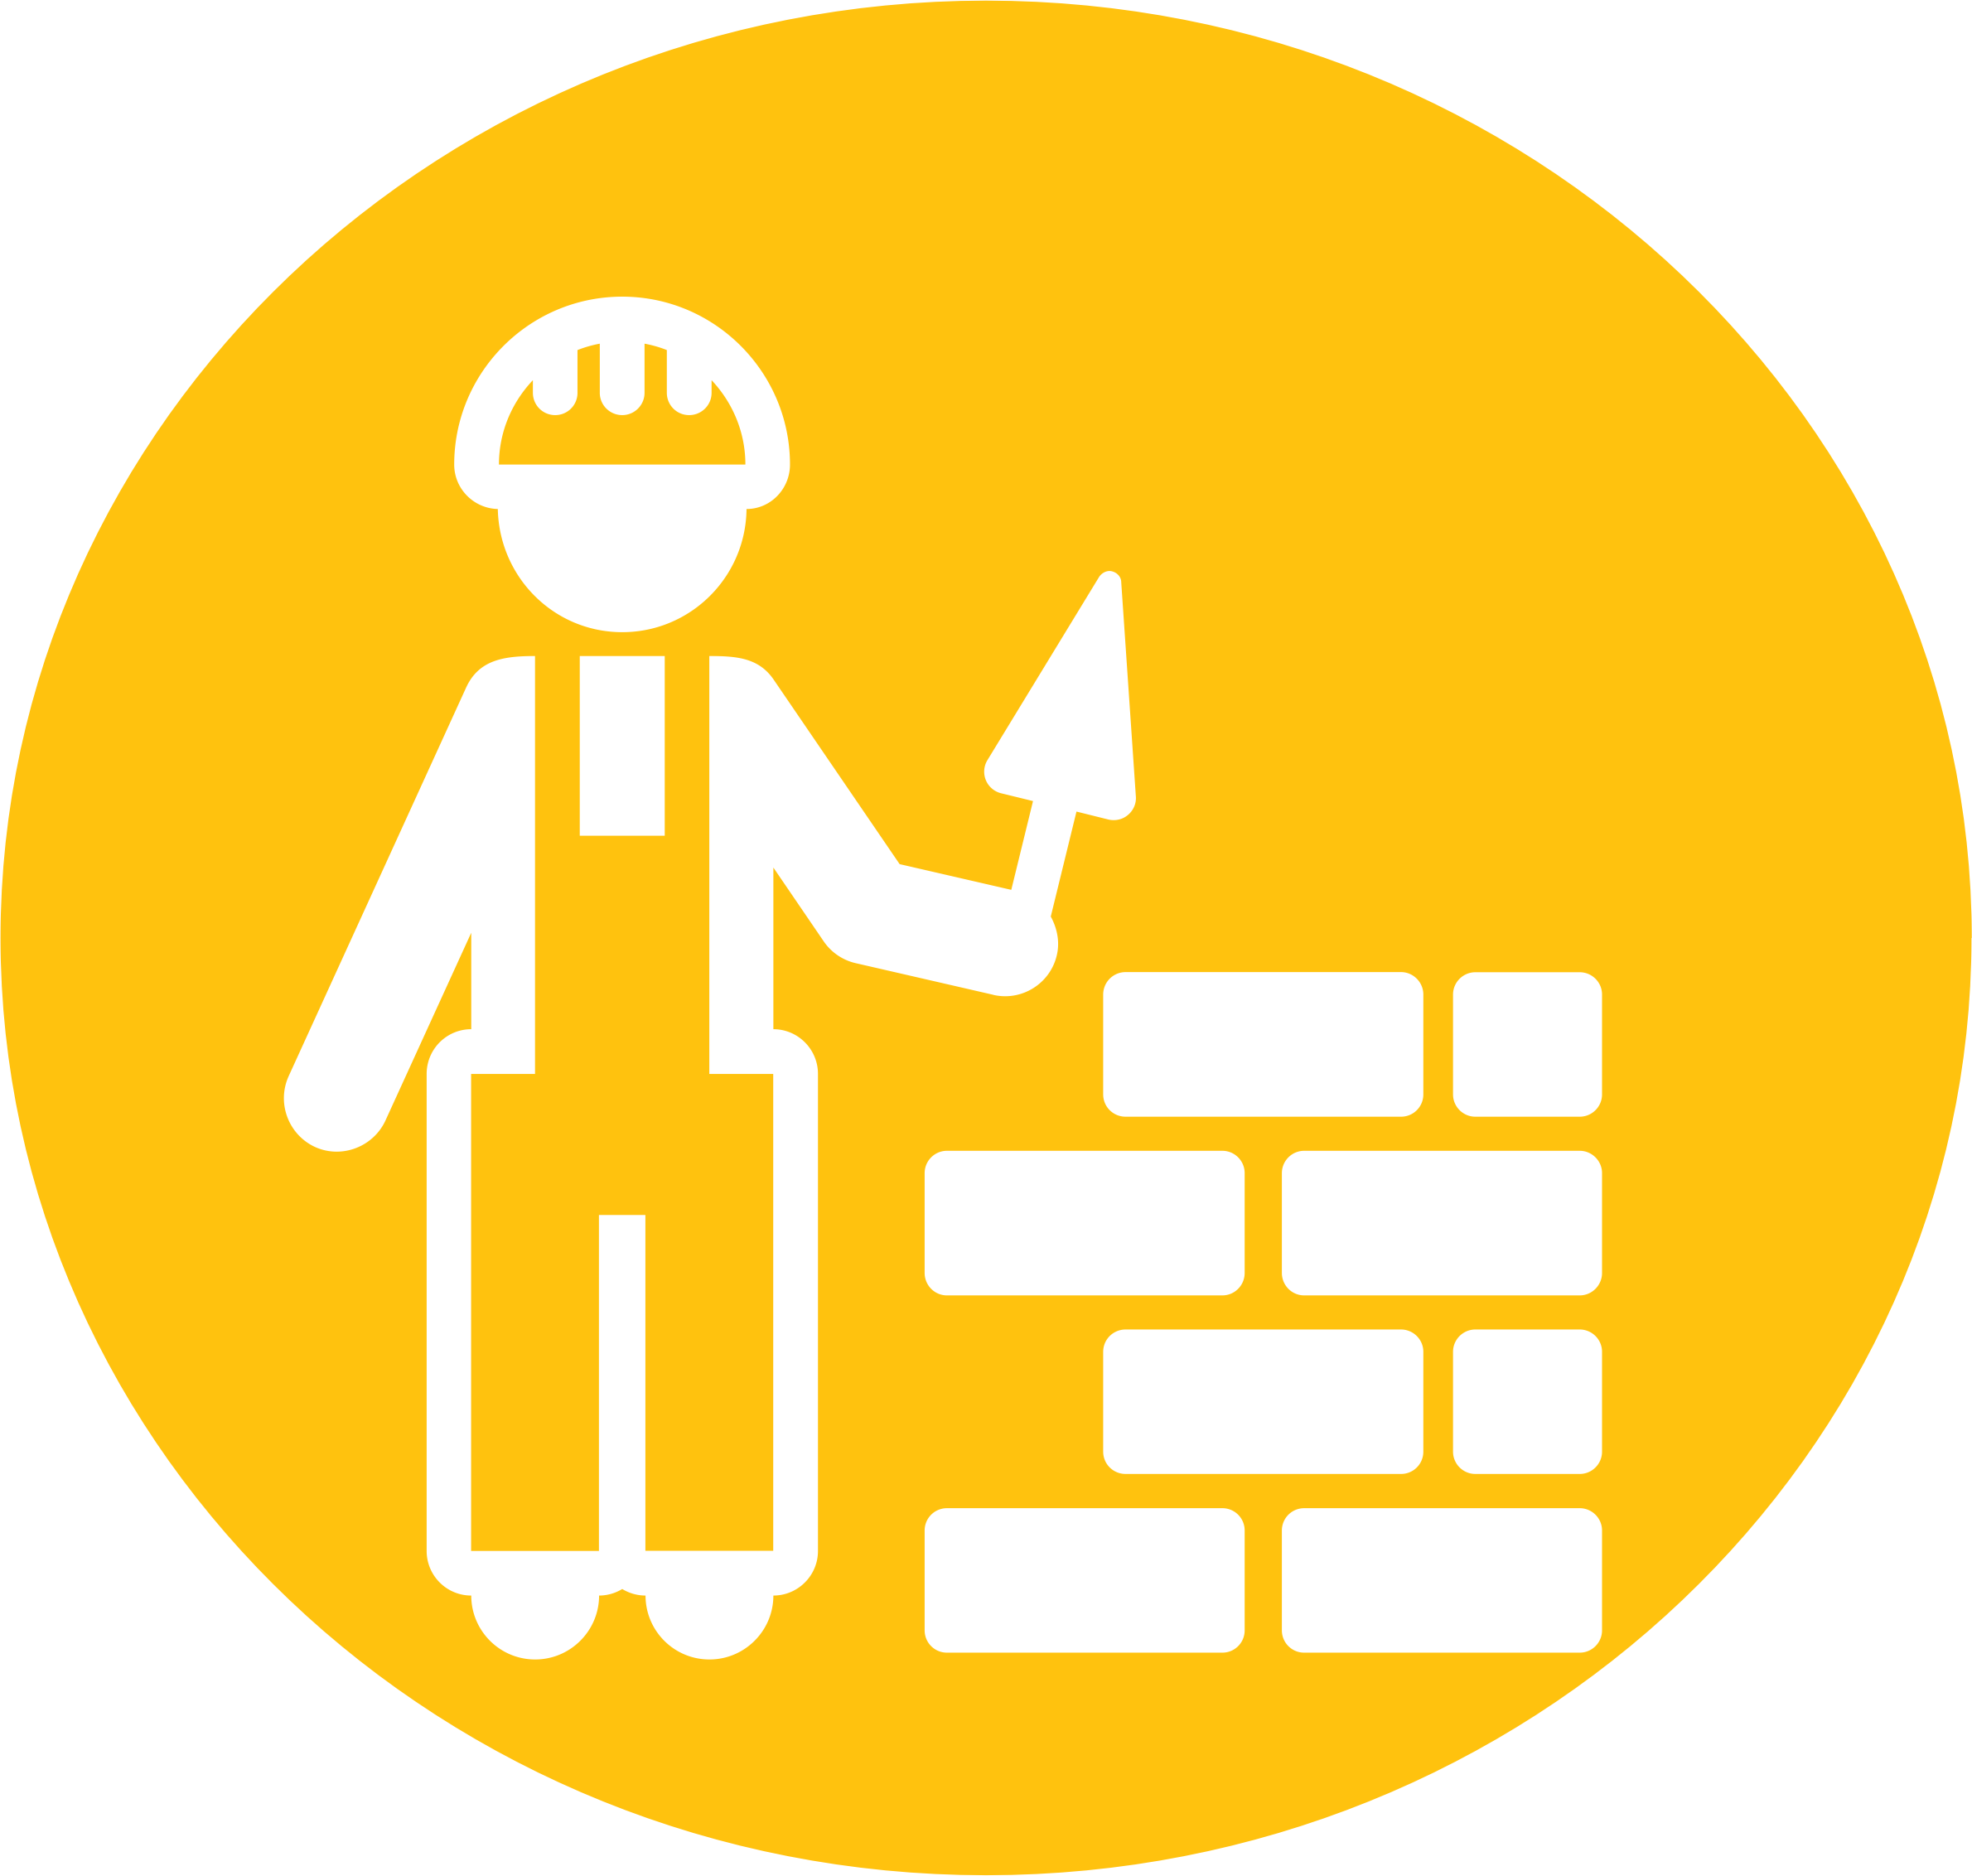 Mason Bricklayer Pictogram by SunKing2